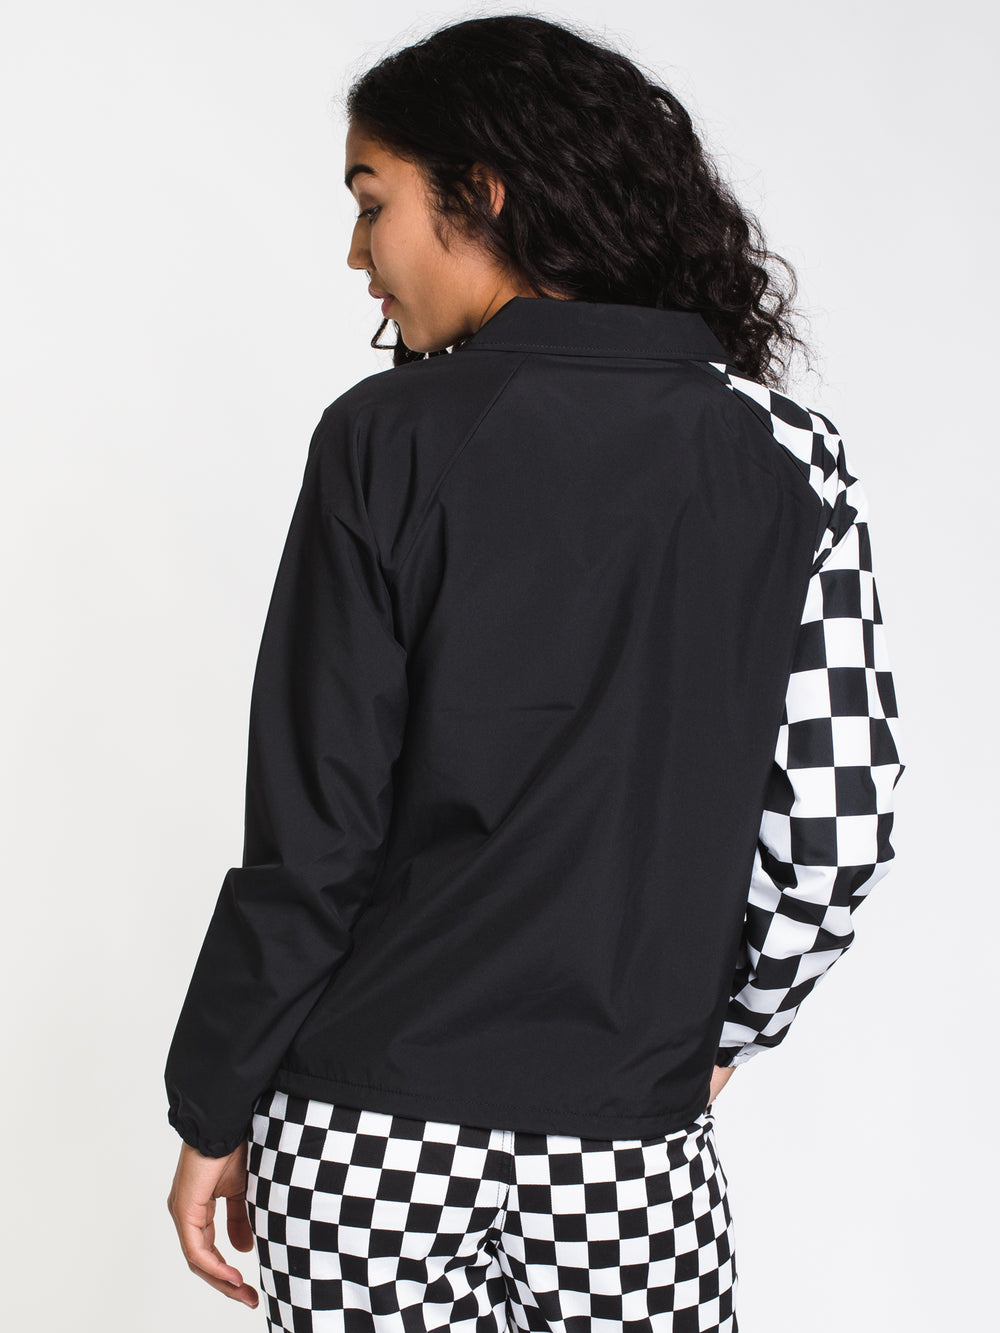 WOMENS COACH SUPERSPEEDEE JACKET - BLK